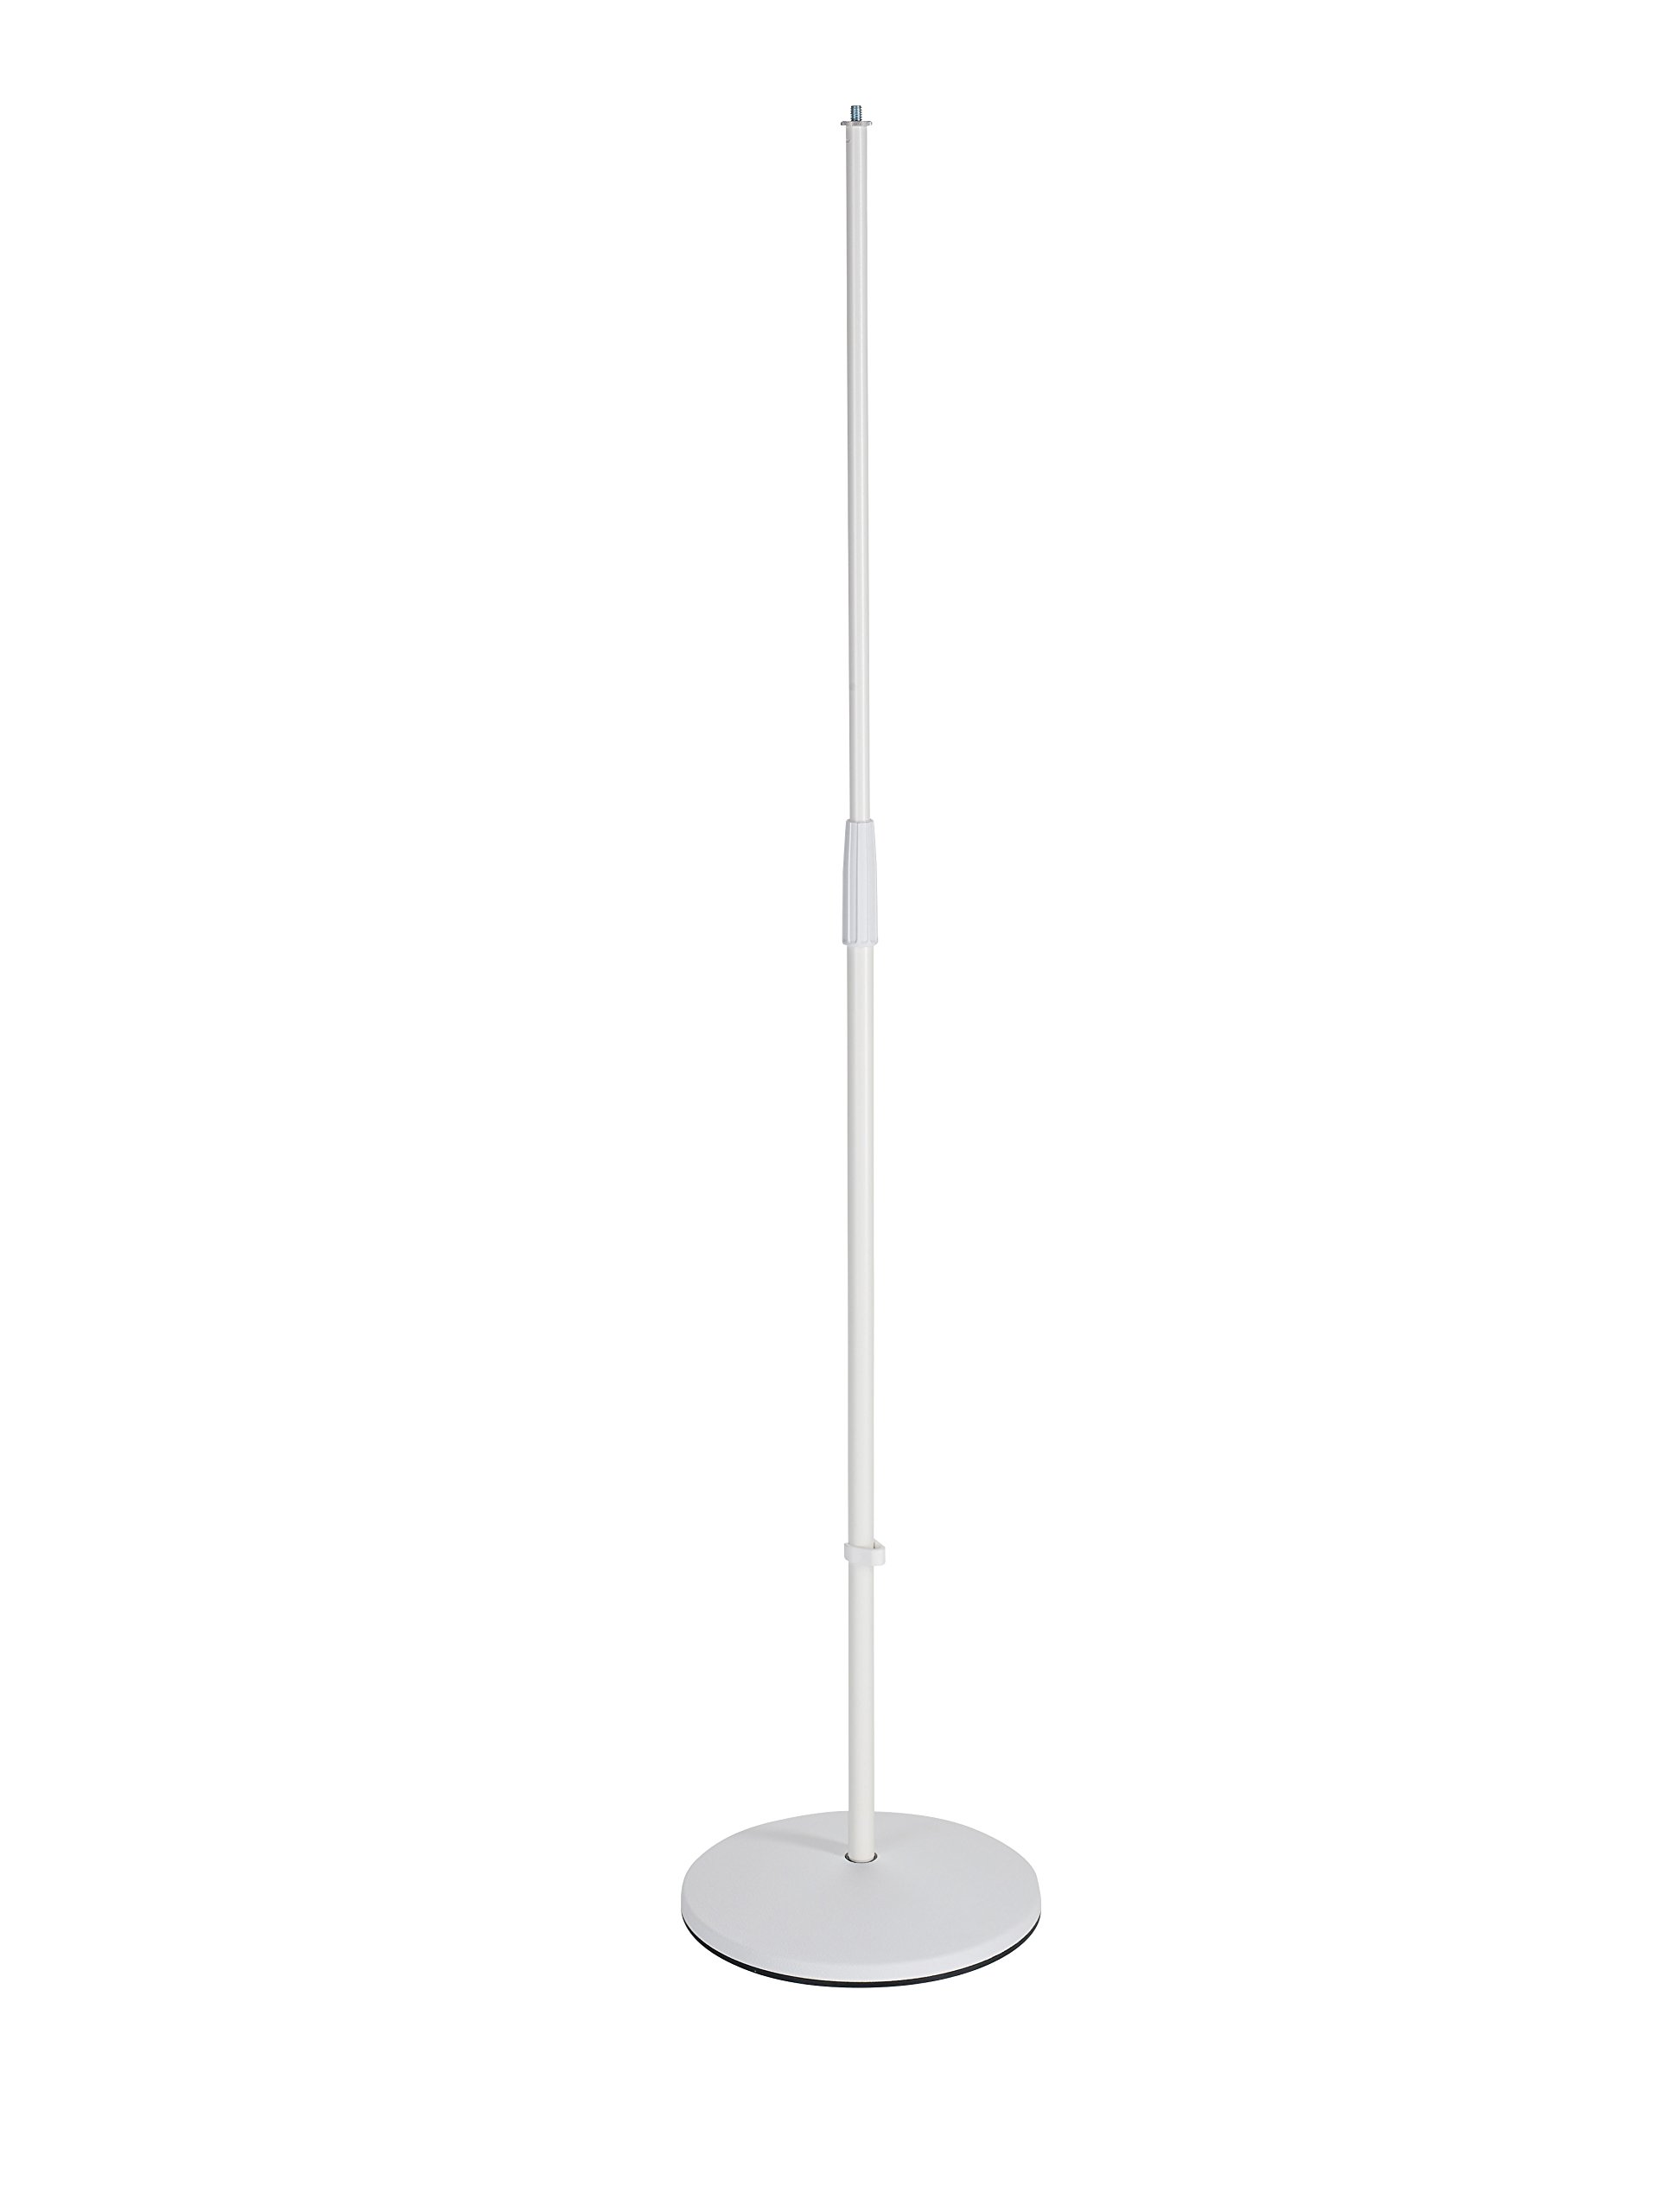 K&M Stands 26010-500-76 Microphone Stand with 26125 Base, White